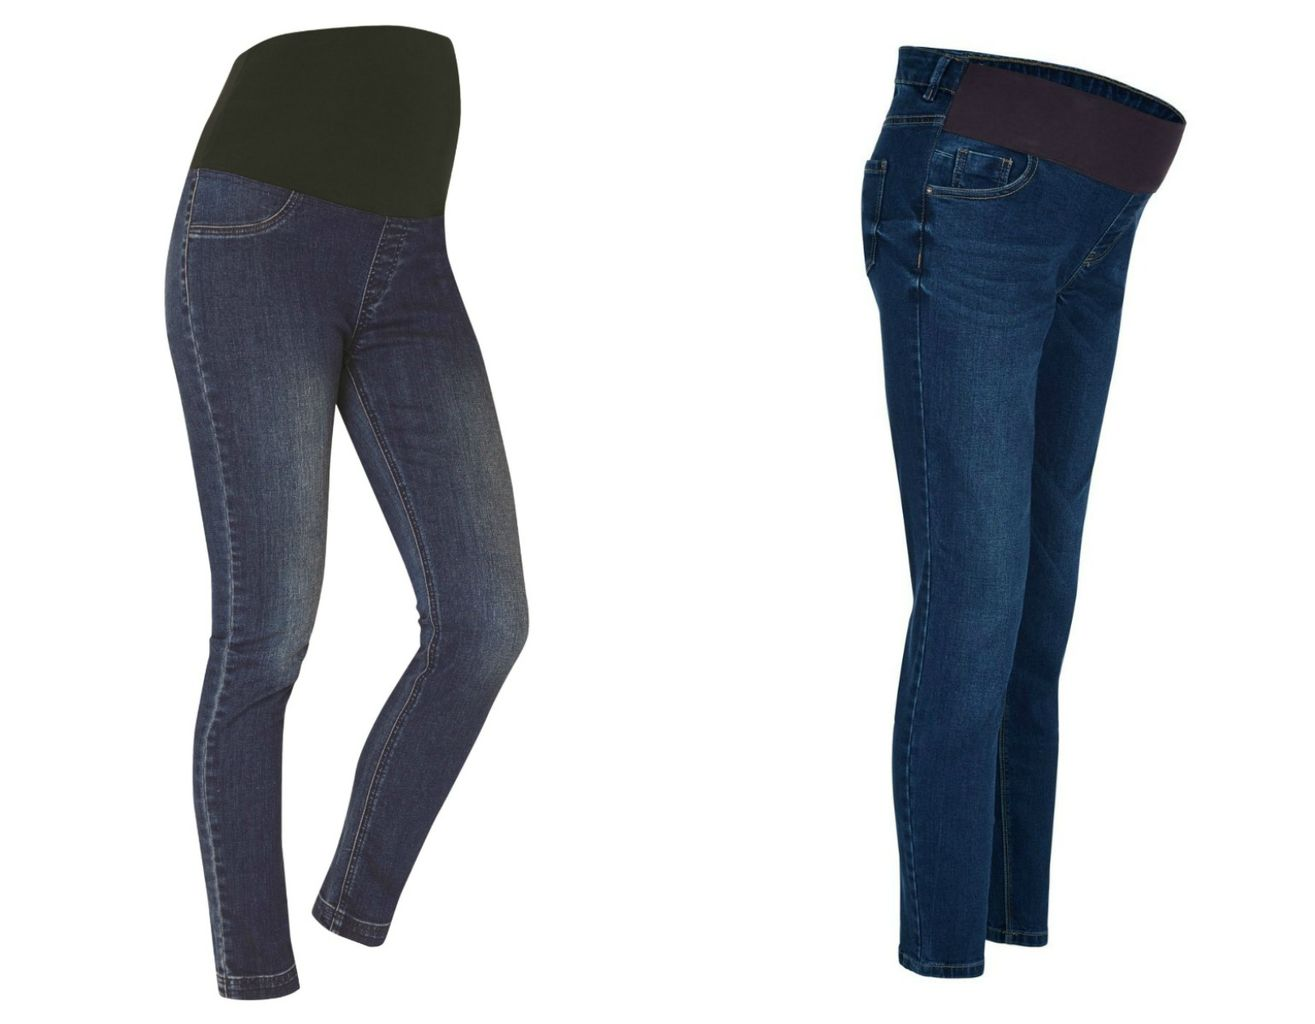 9f75827dca18e From left: JoJo Maman Bébé Skinny Jeans Vintage; New Look Maternity Navy  Under Bump Skinny Jeans © From left: JoJo Maman Bébé Skinny Jeans Vintage;  ...